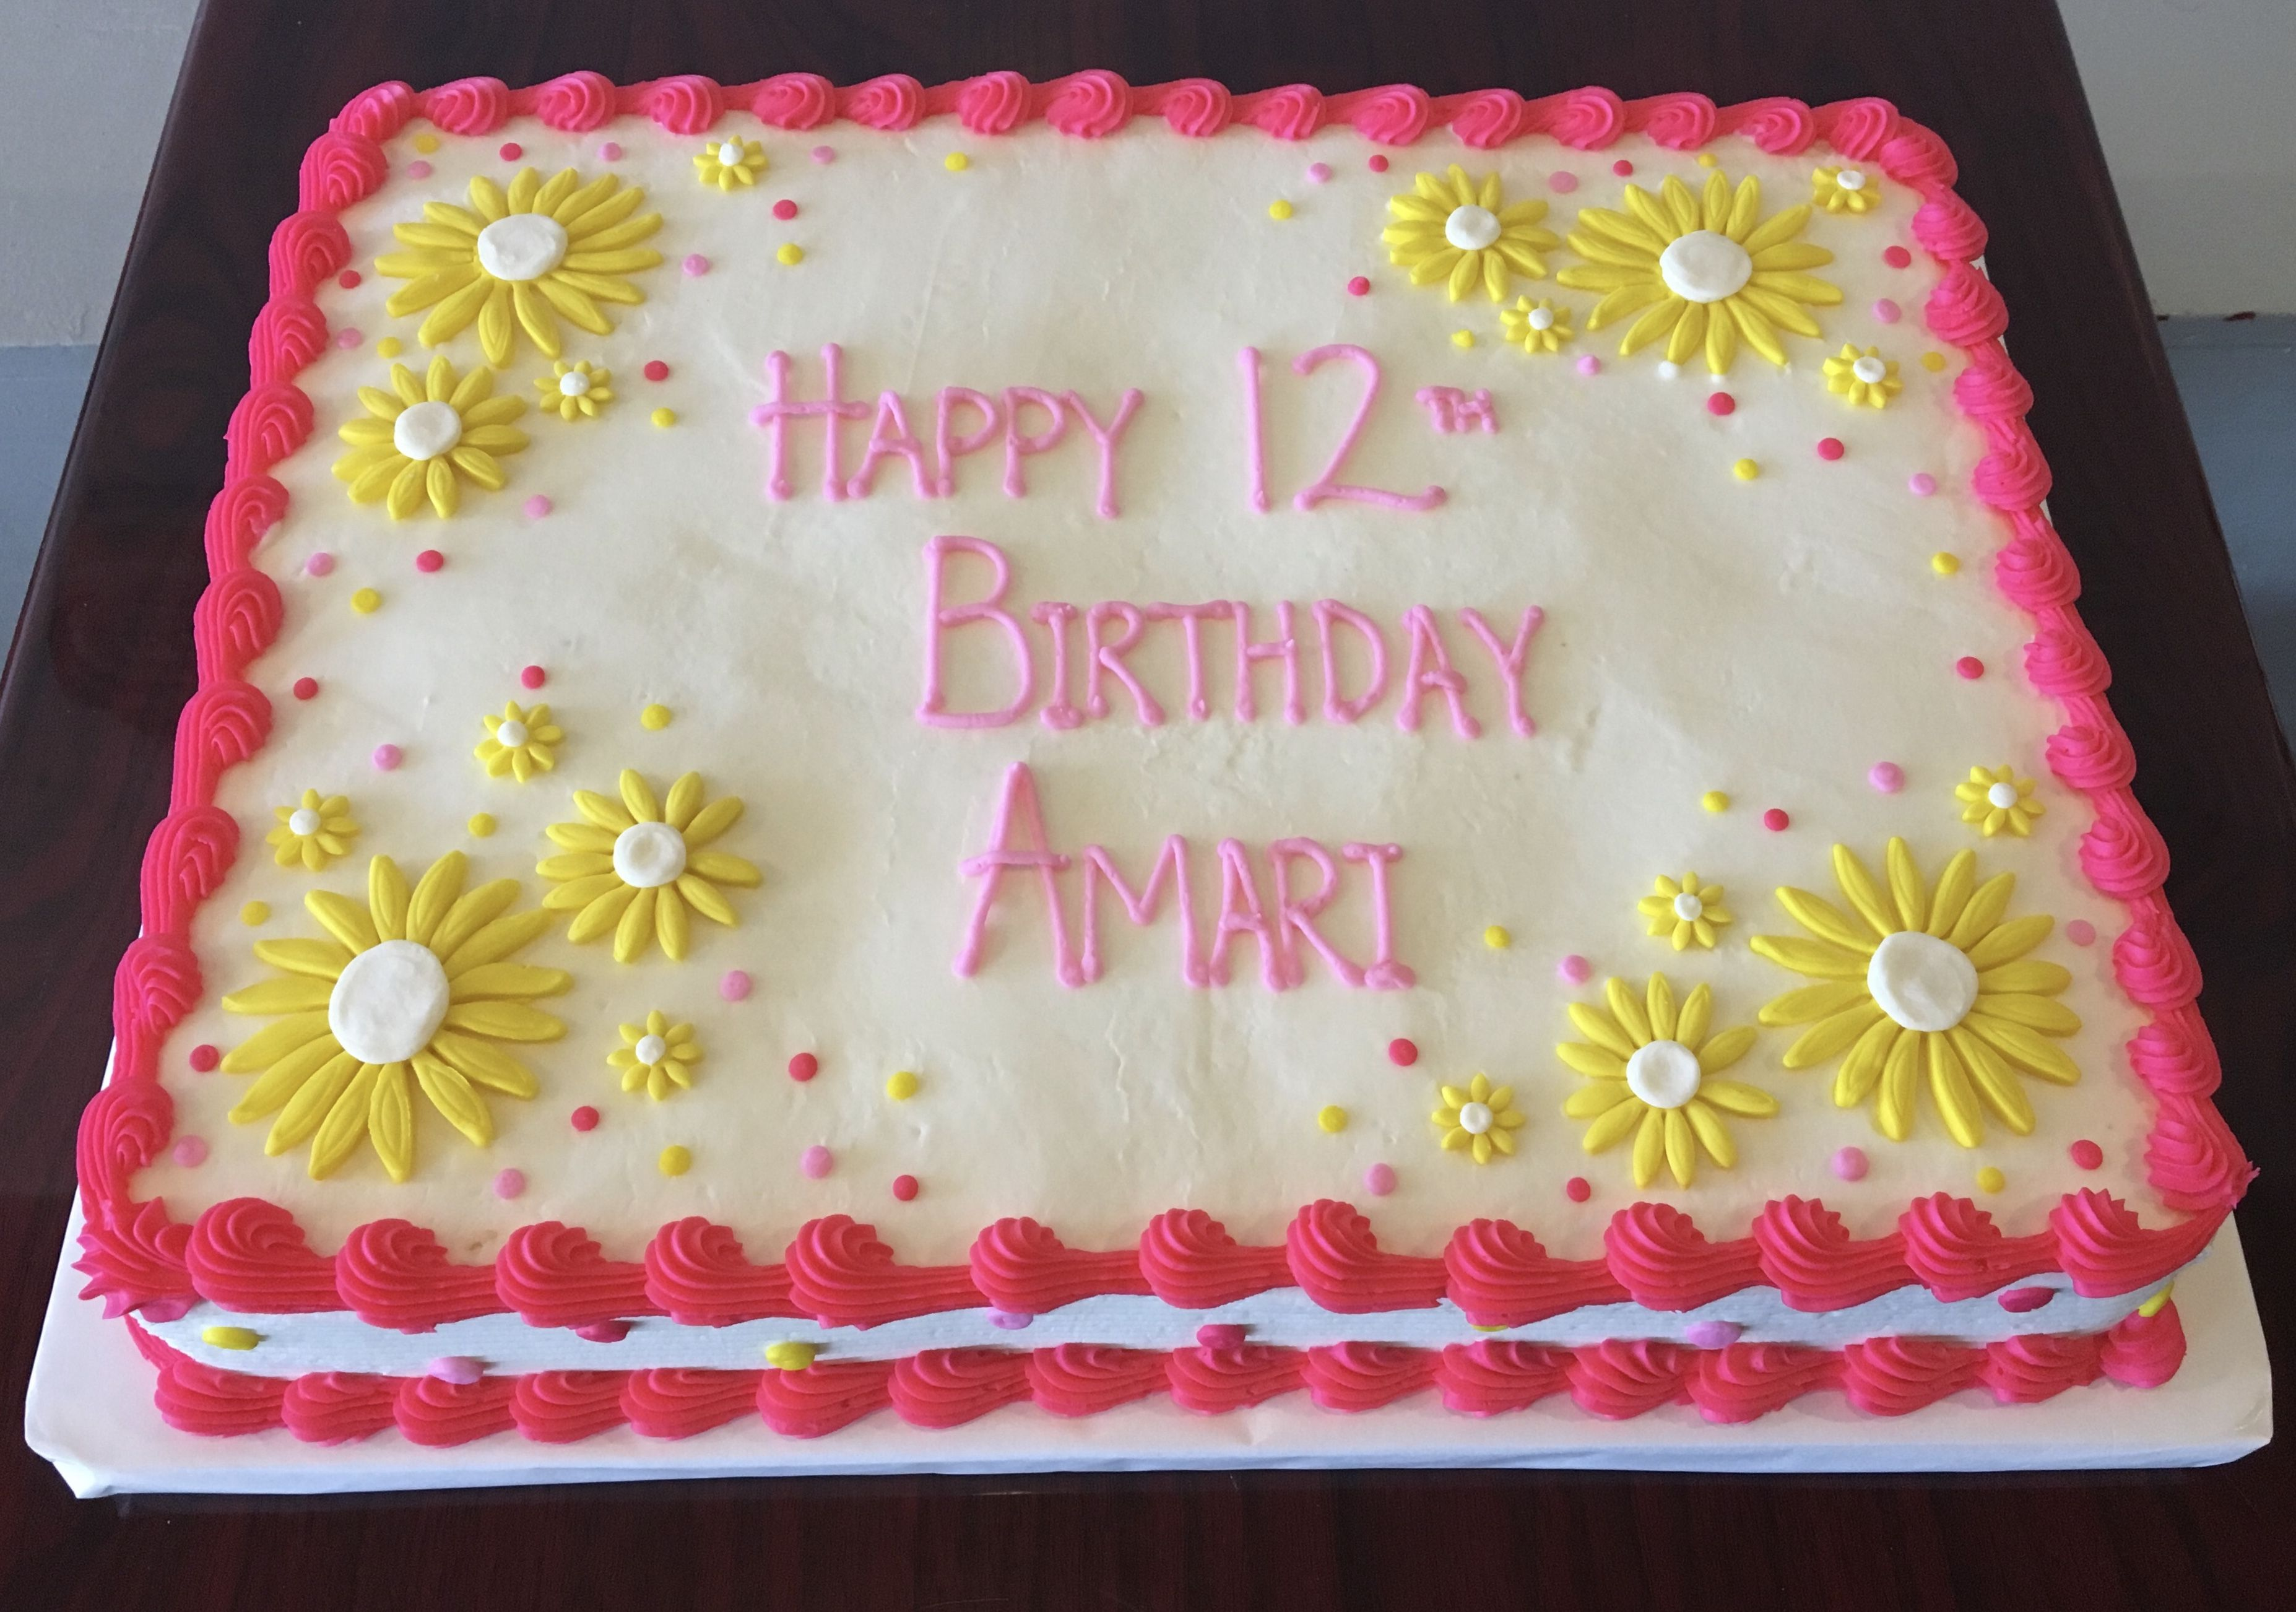 Marvelous Pink And Yellow Birthday Sheet Cake Adrienne Co Bakery With Funny Birthday Cards Online Ioscodamsfinfo